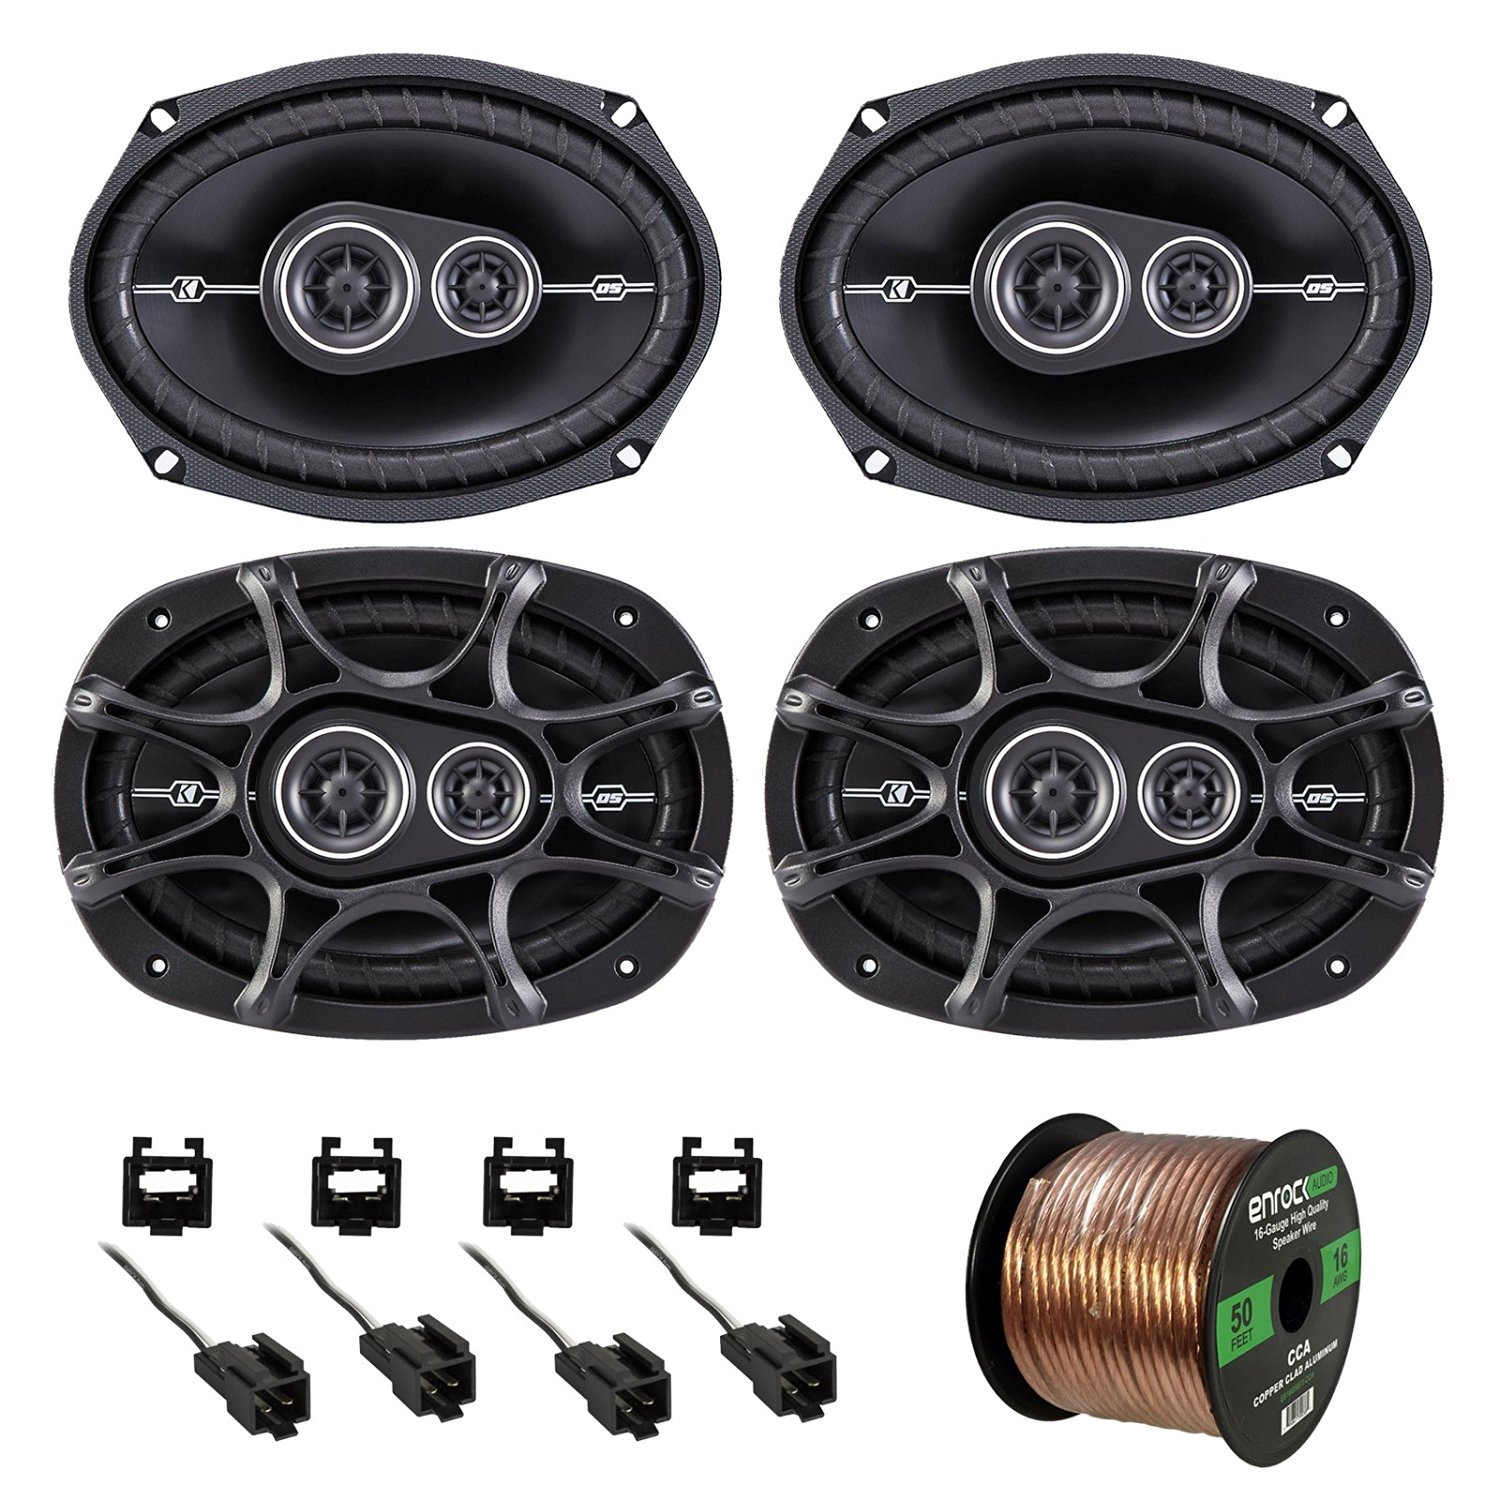 Buy Car Speaker Bundle Combo 2 Pairs Of Kicker 43dsc6504 65 Inch Gm Stereo Wiring Harnesses 41dsc6934 6x9 360 Watt 3